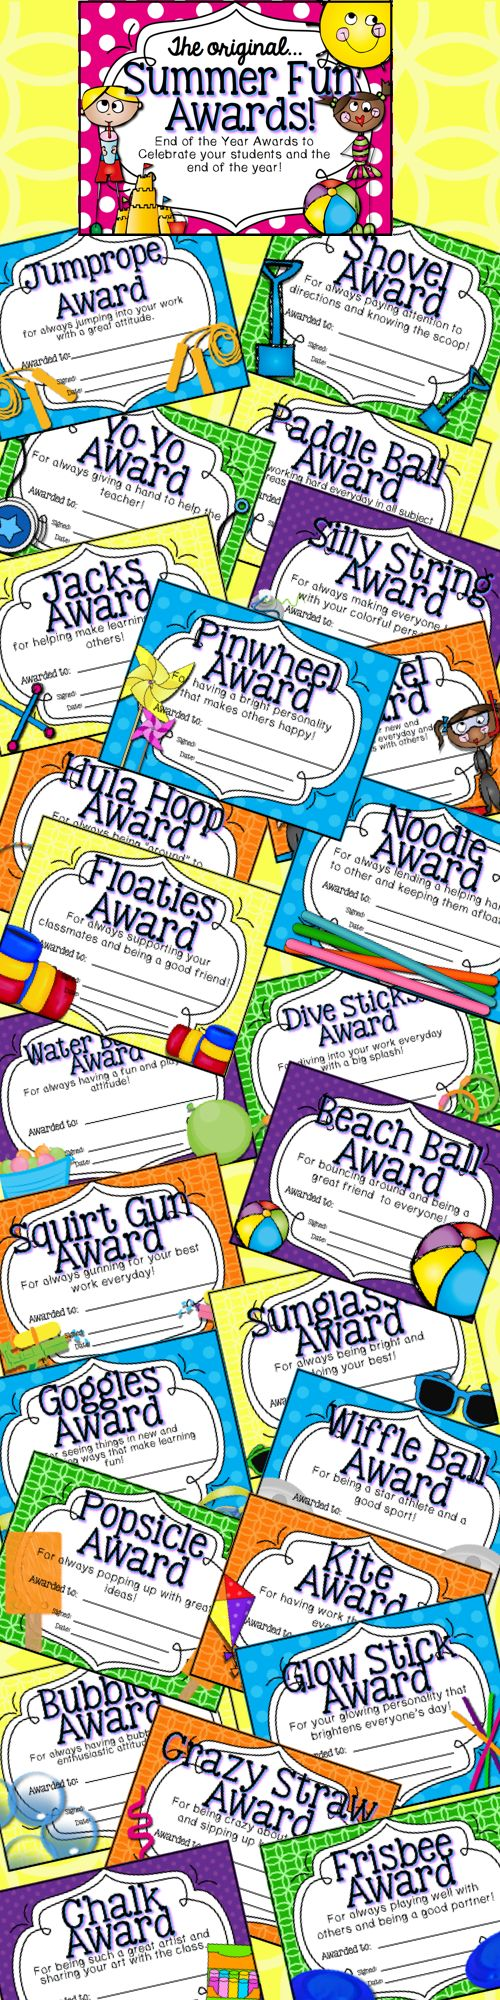 Summer Fun Awards for any classroom! Celebrate your students AND the end of the year! Look great in color or black and white! $